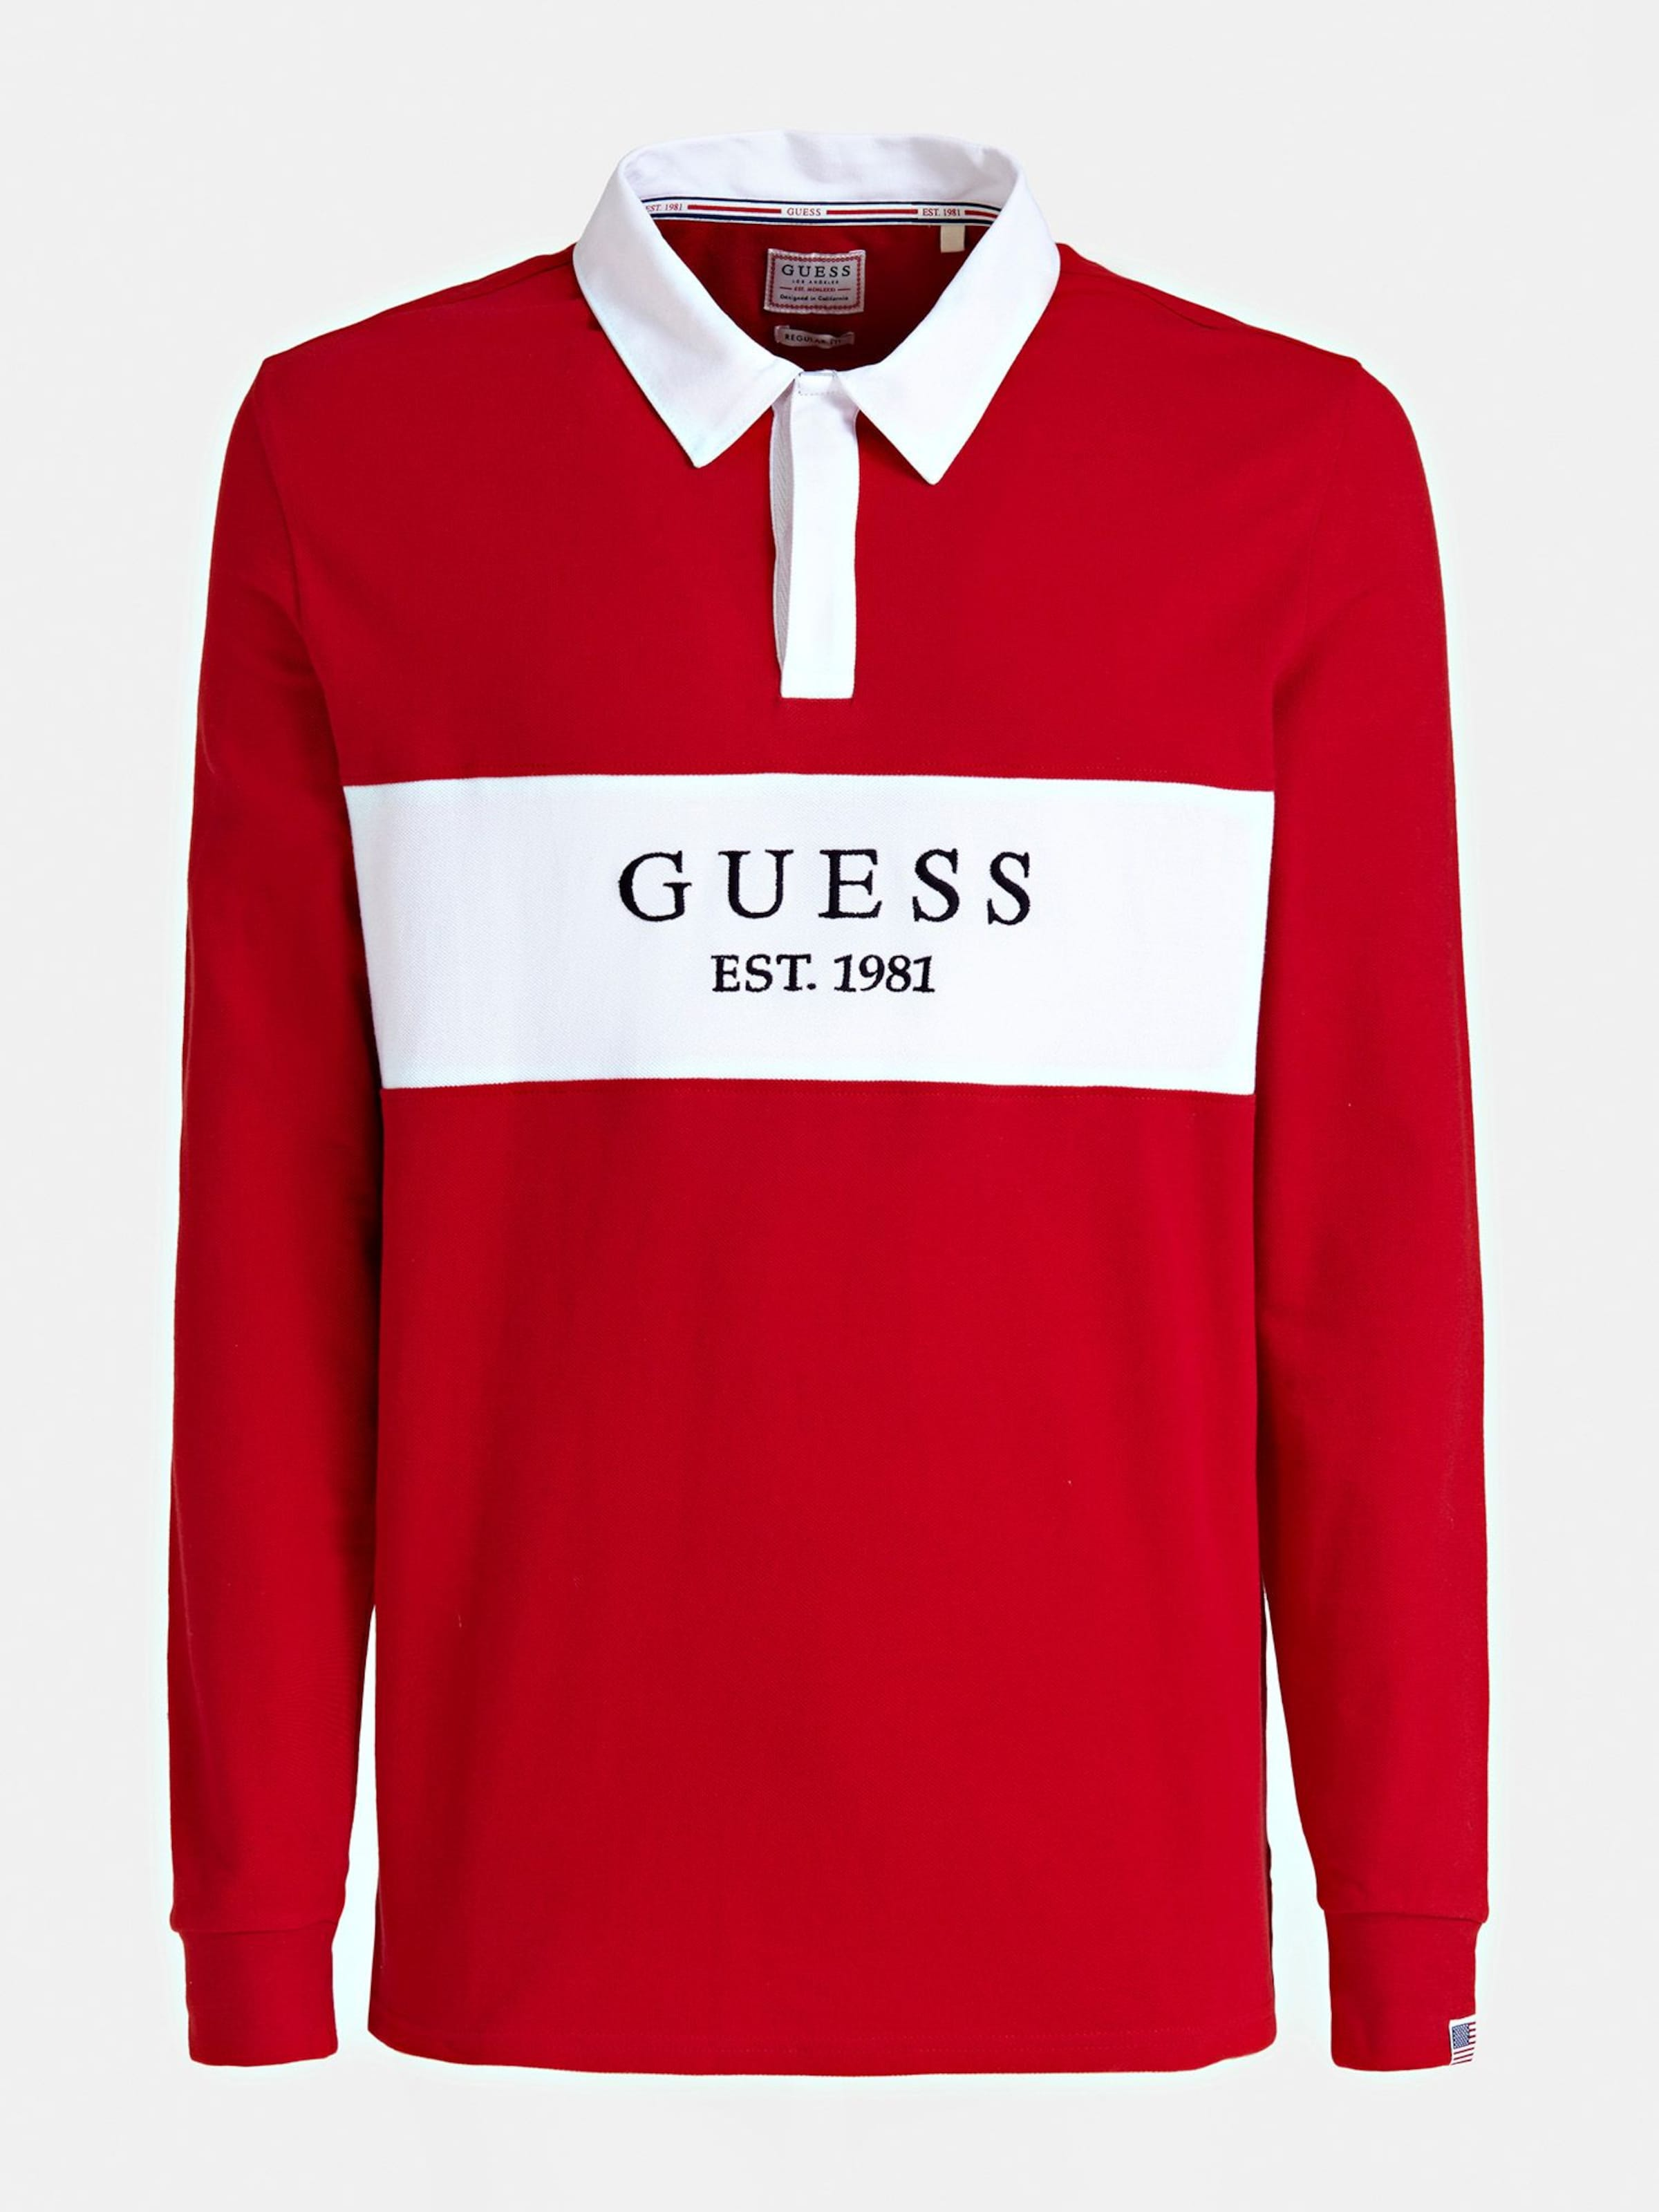 Dunkelrot Poloshirt Guess Guess In In Guess Poloshirt Poloshirt Dunkelrot Dunkelrot Poloshirt Guess In wOkP08nX